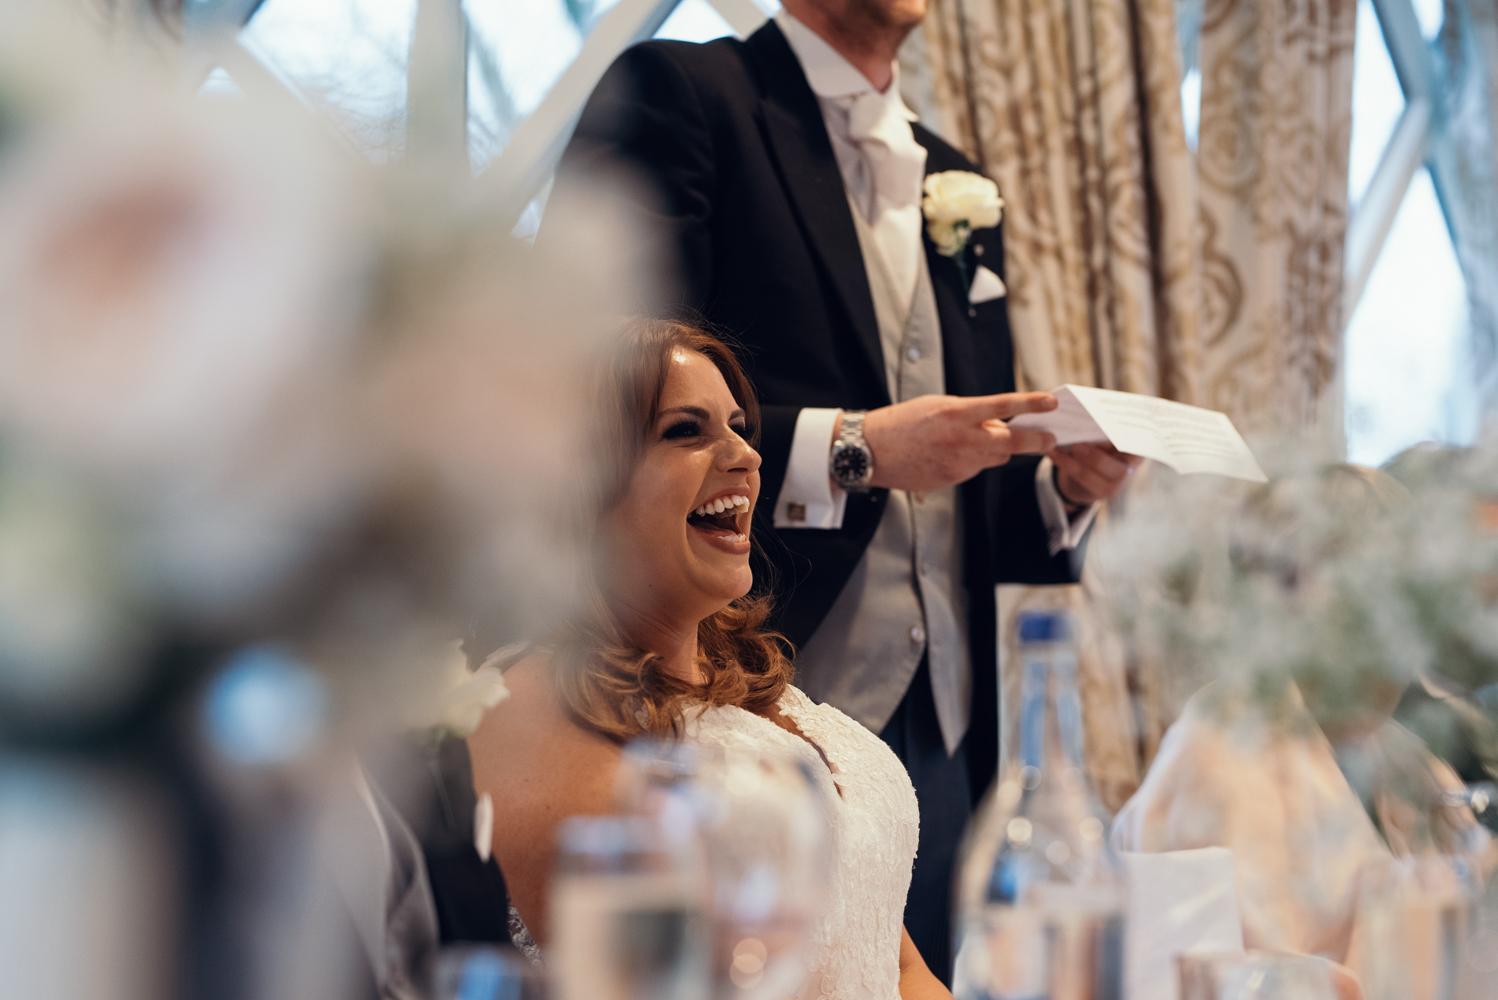 The bride laughing at one of the grooms joke during the speeches